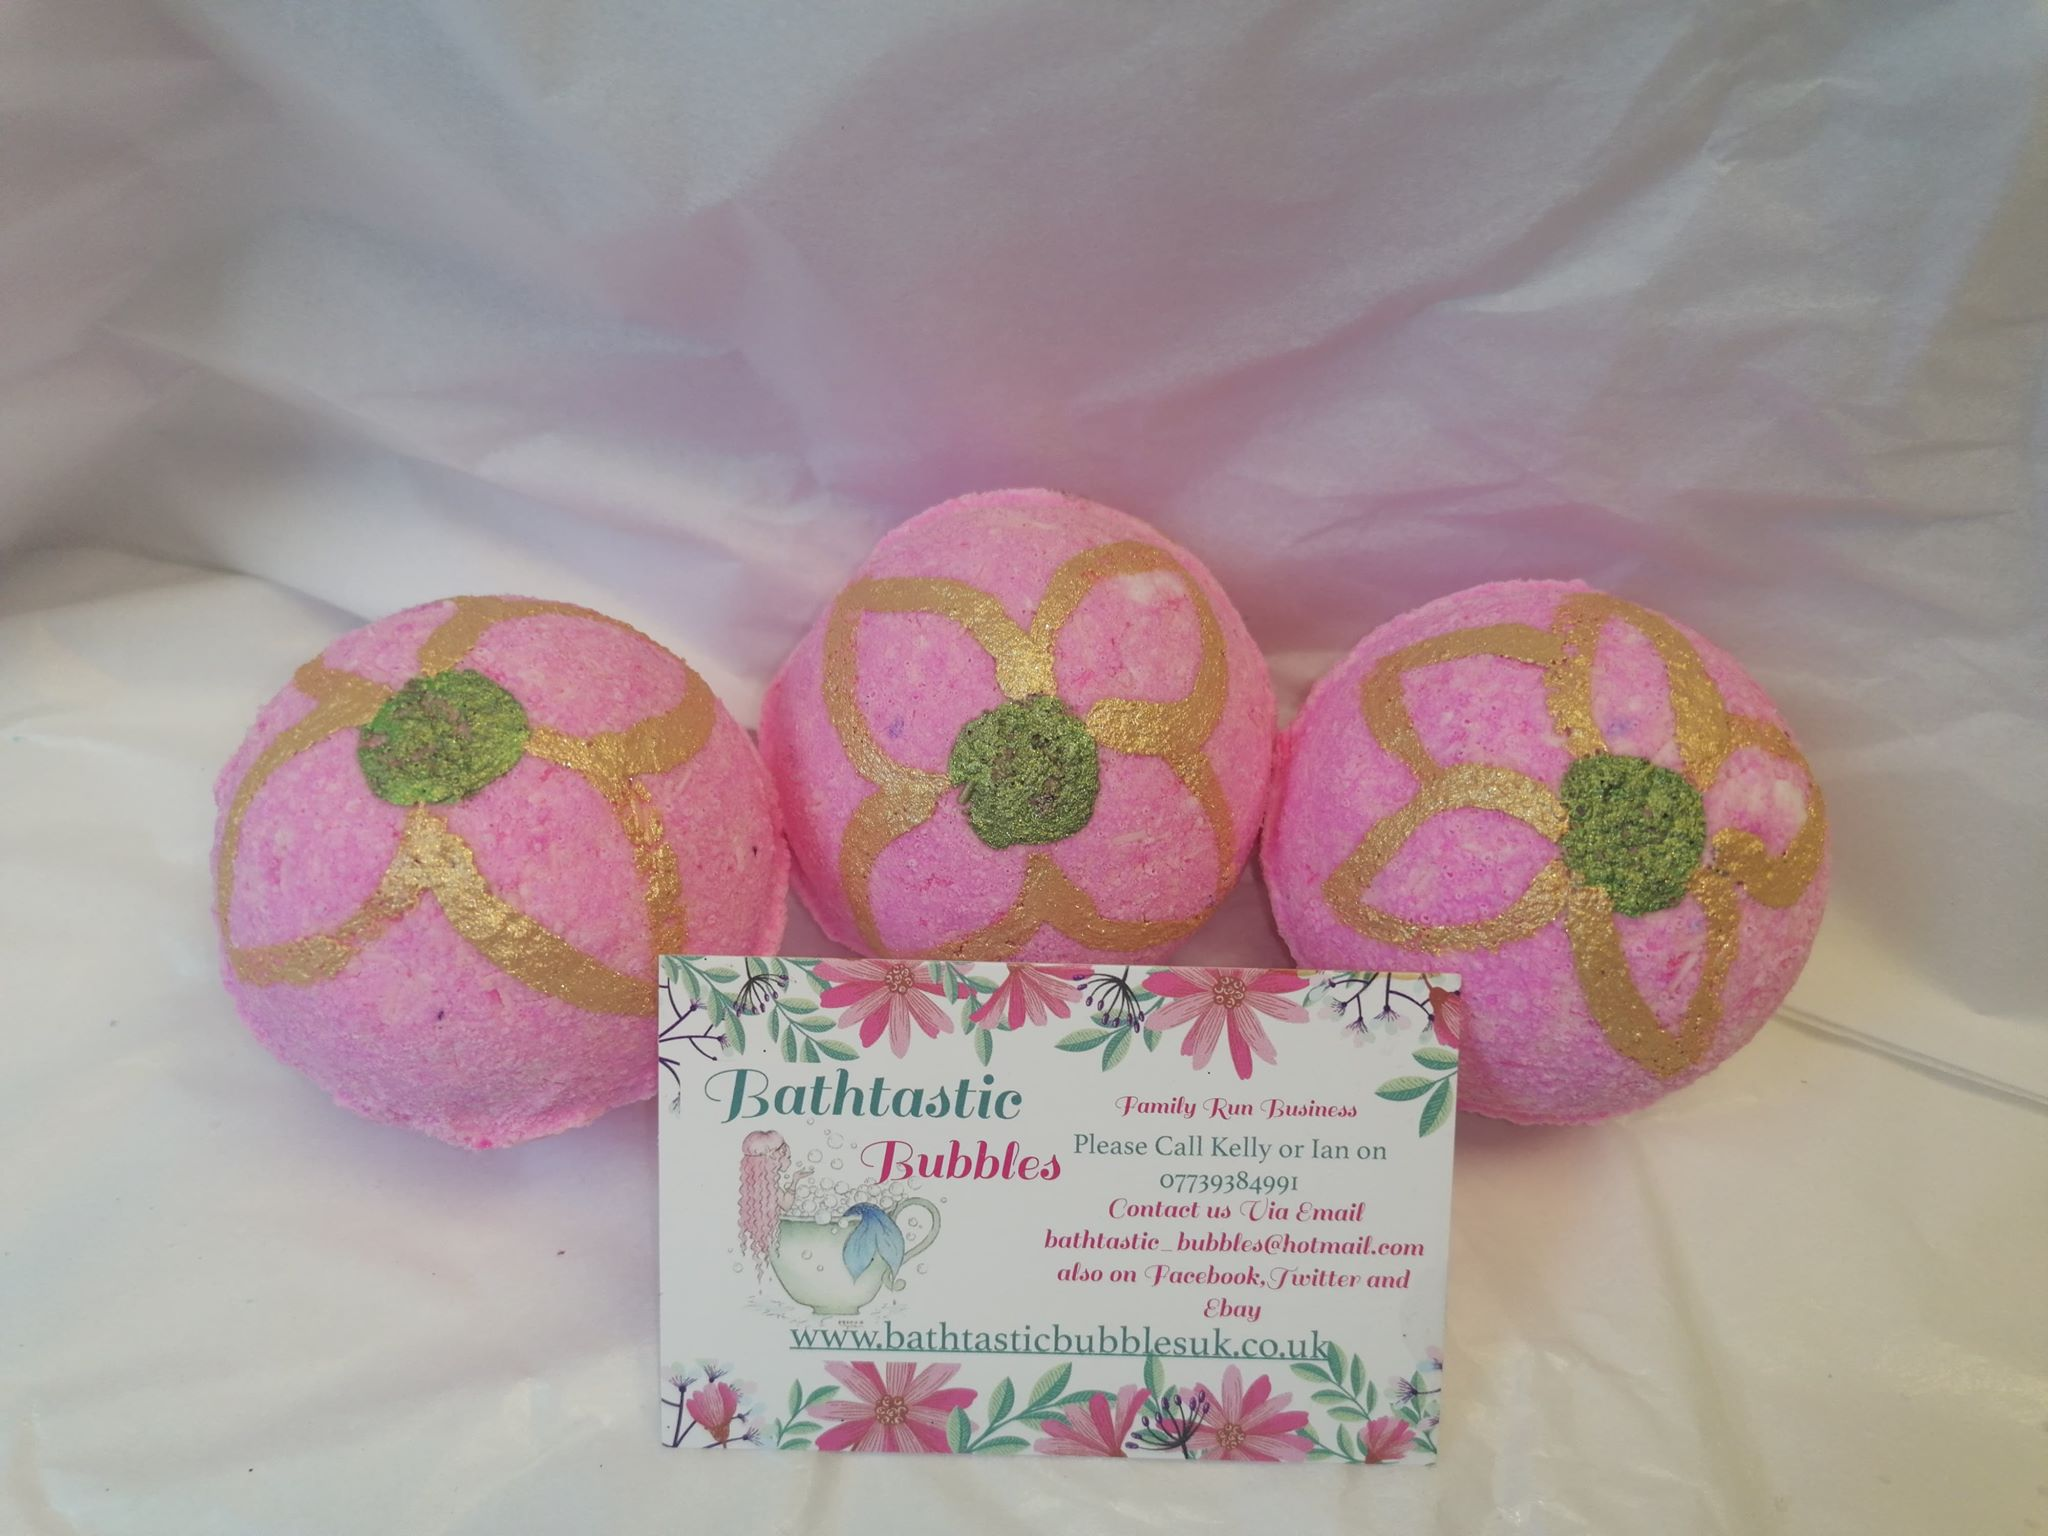 Marc Jacobs Daisy Inspired Bath Bomb